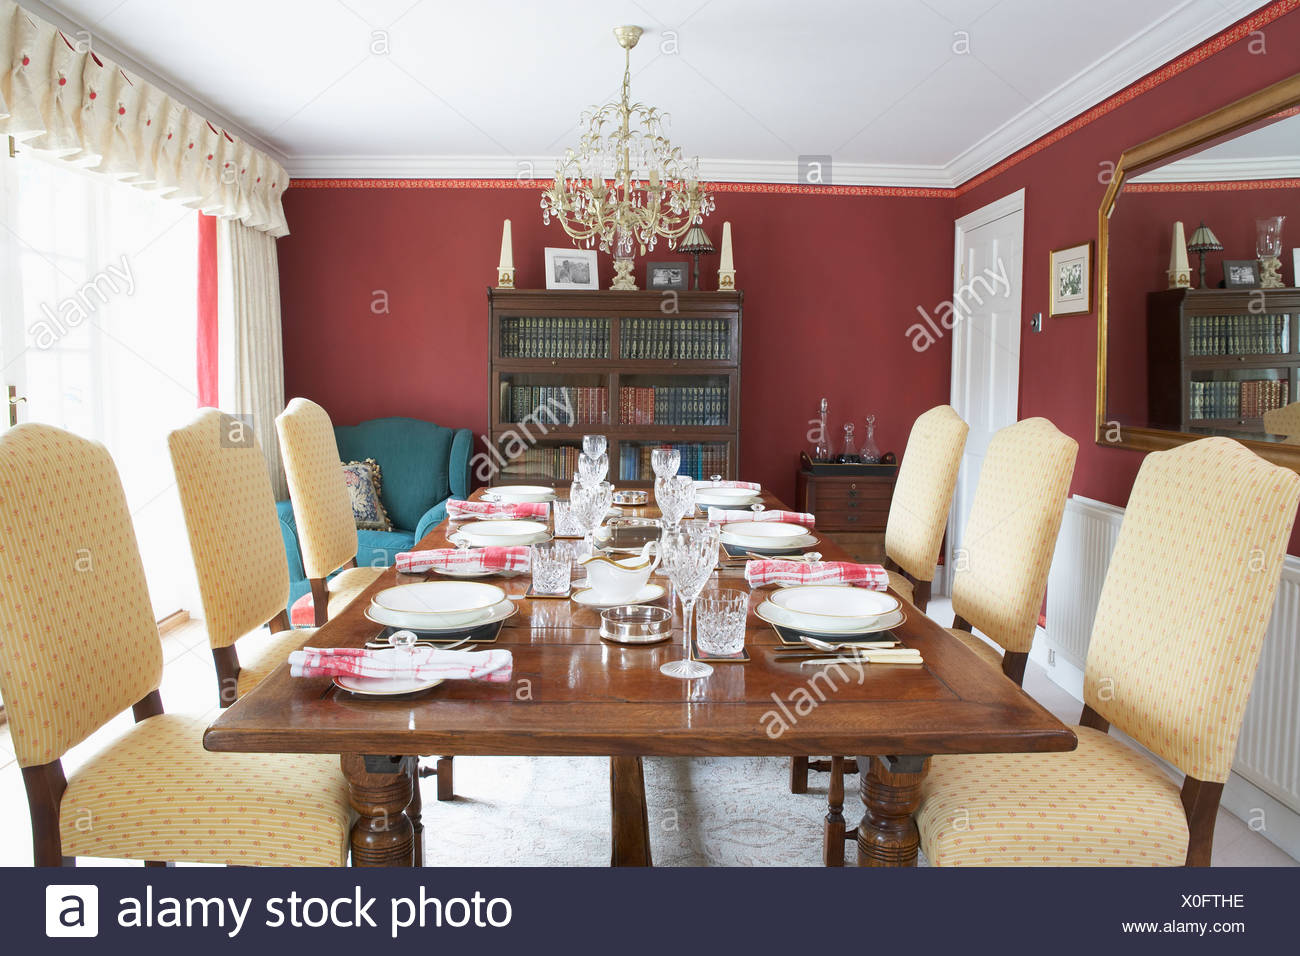 Dining Room With Laid Table - Stock Image